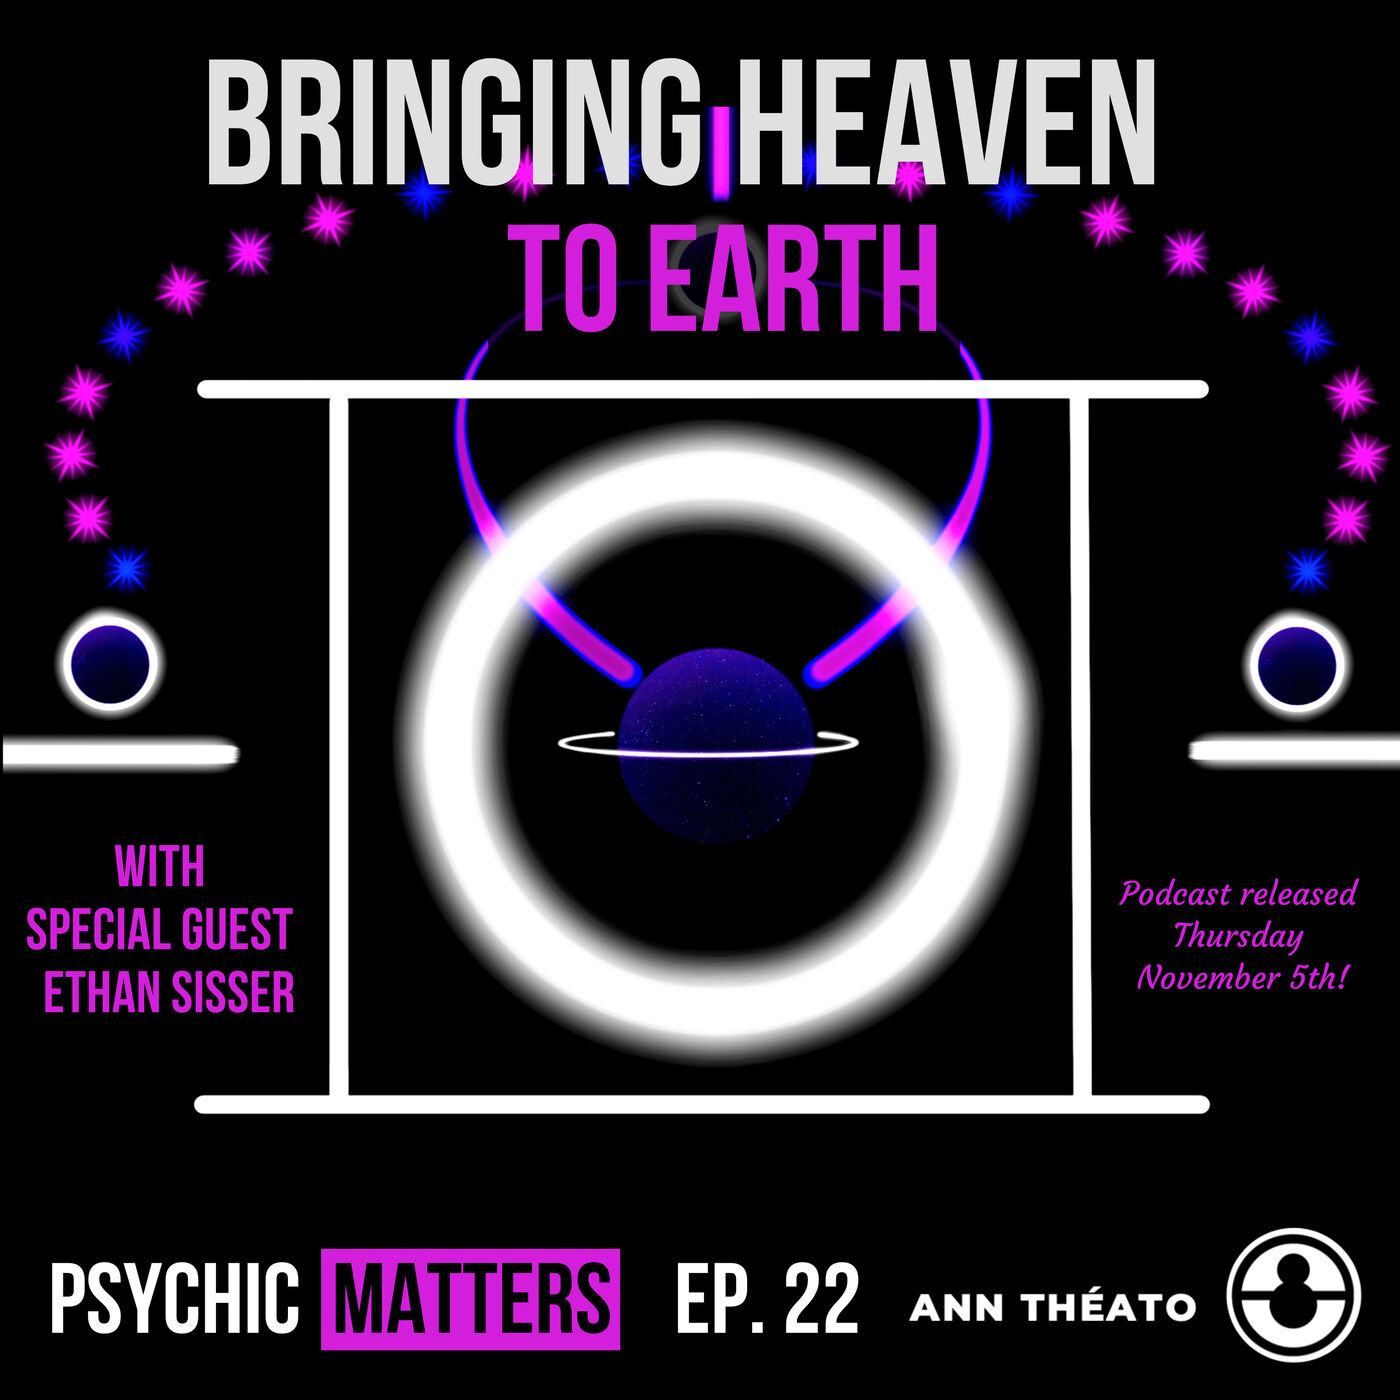 PM: 022 Bringing Heaven To Earth